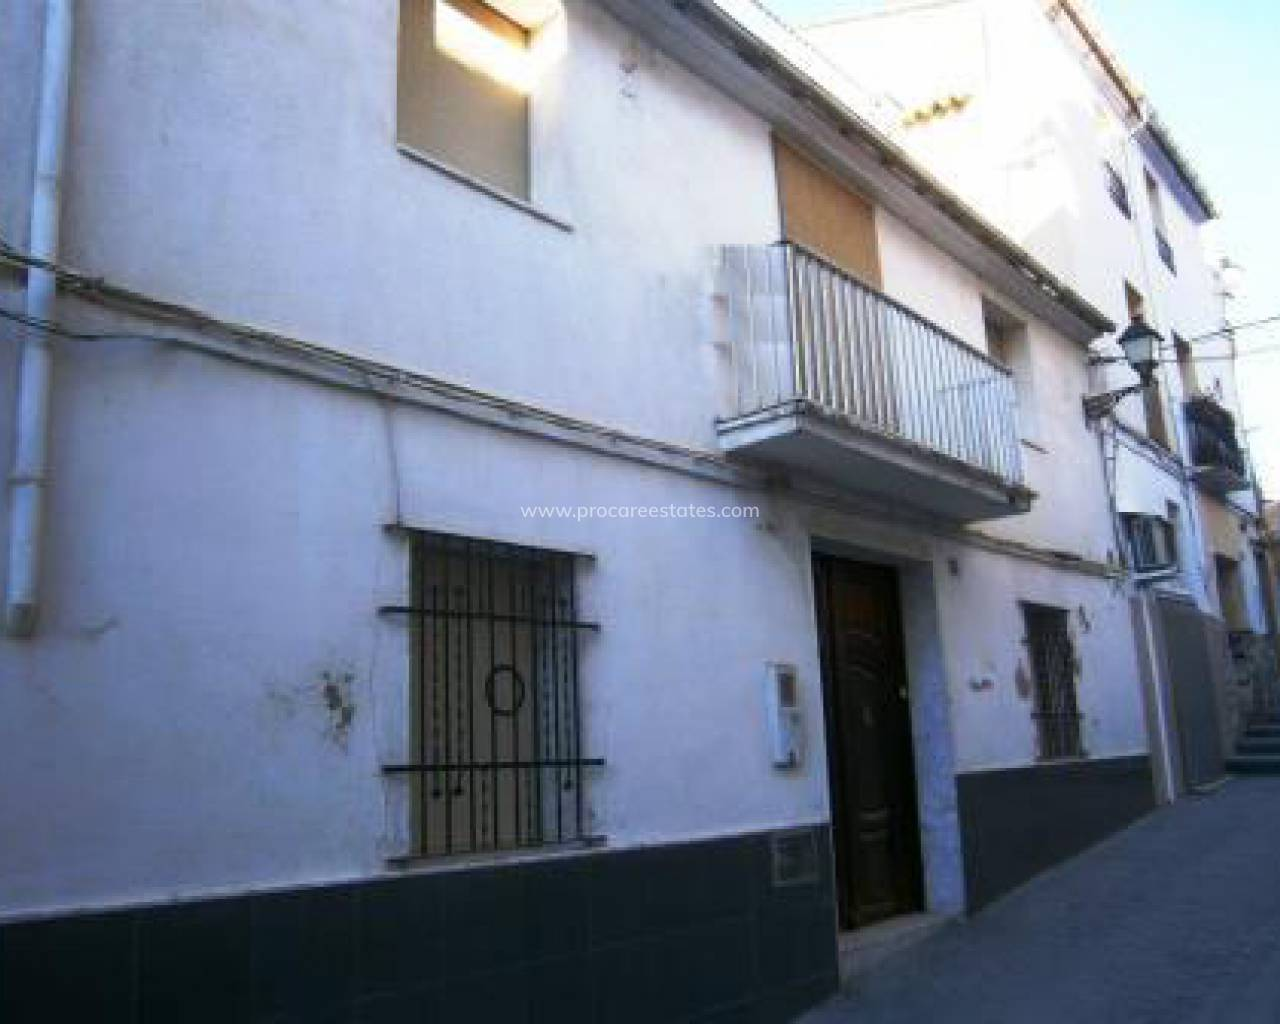 Townhouse - Resale - Albaida - Albaida